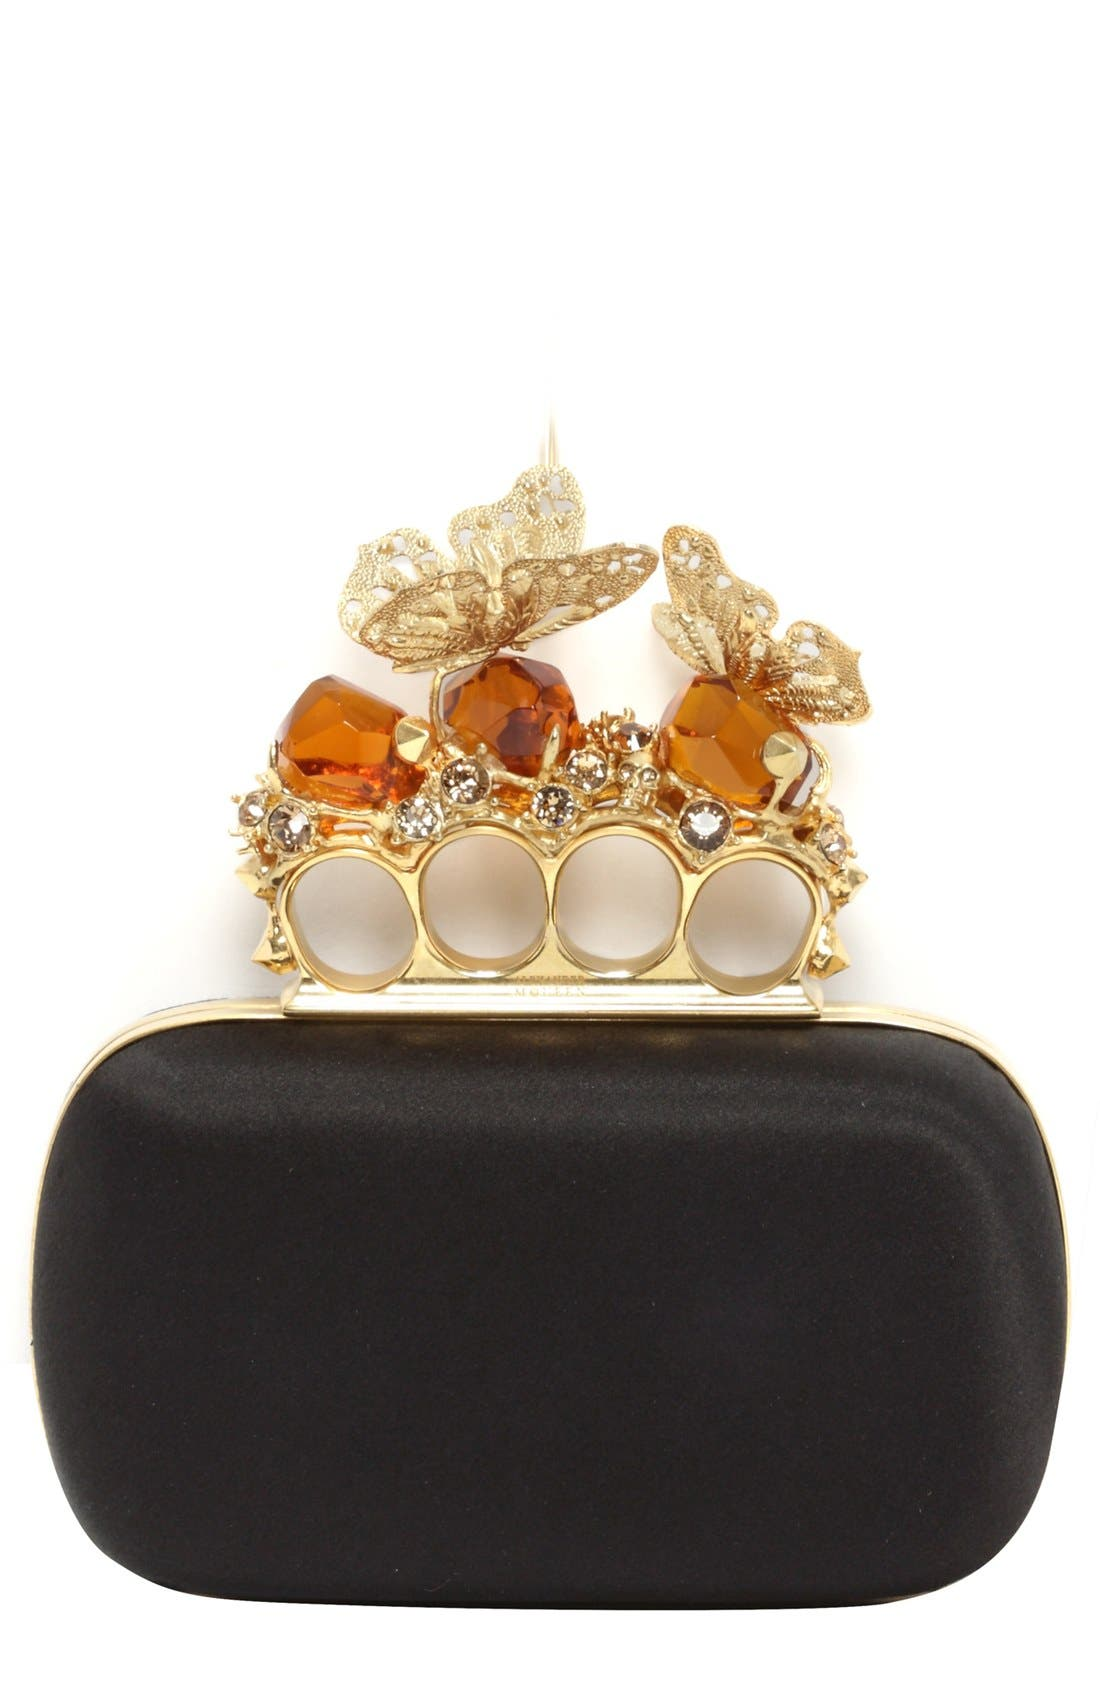 Alternate Image 1 Selected - Alexander McQueen 'Butterfly  Knuckle Clasp' Clutch